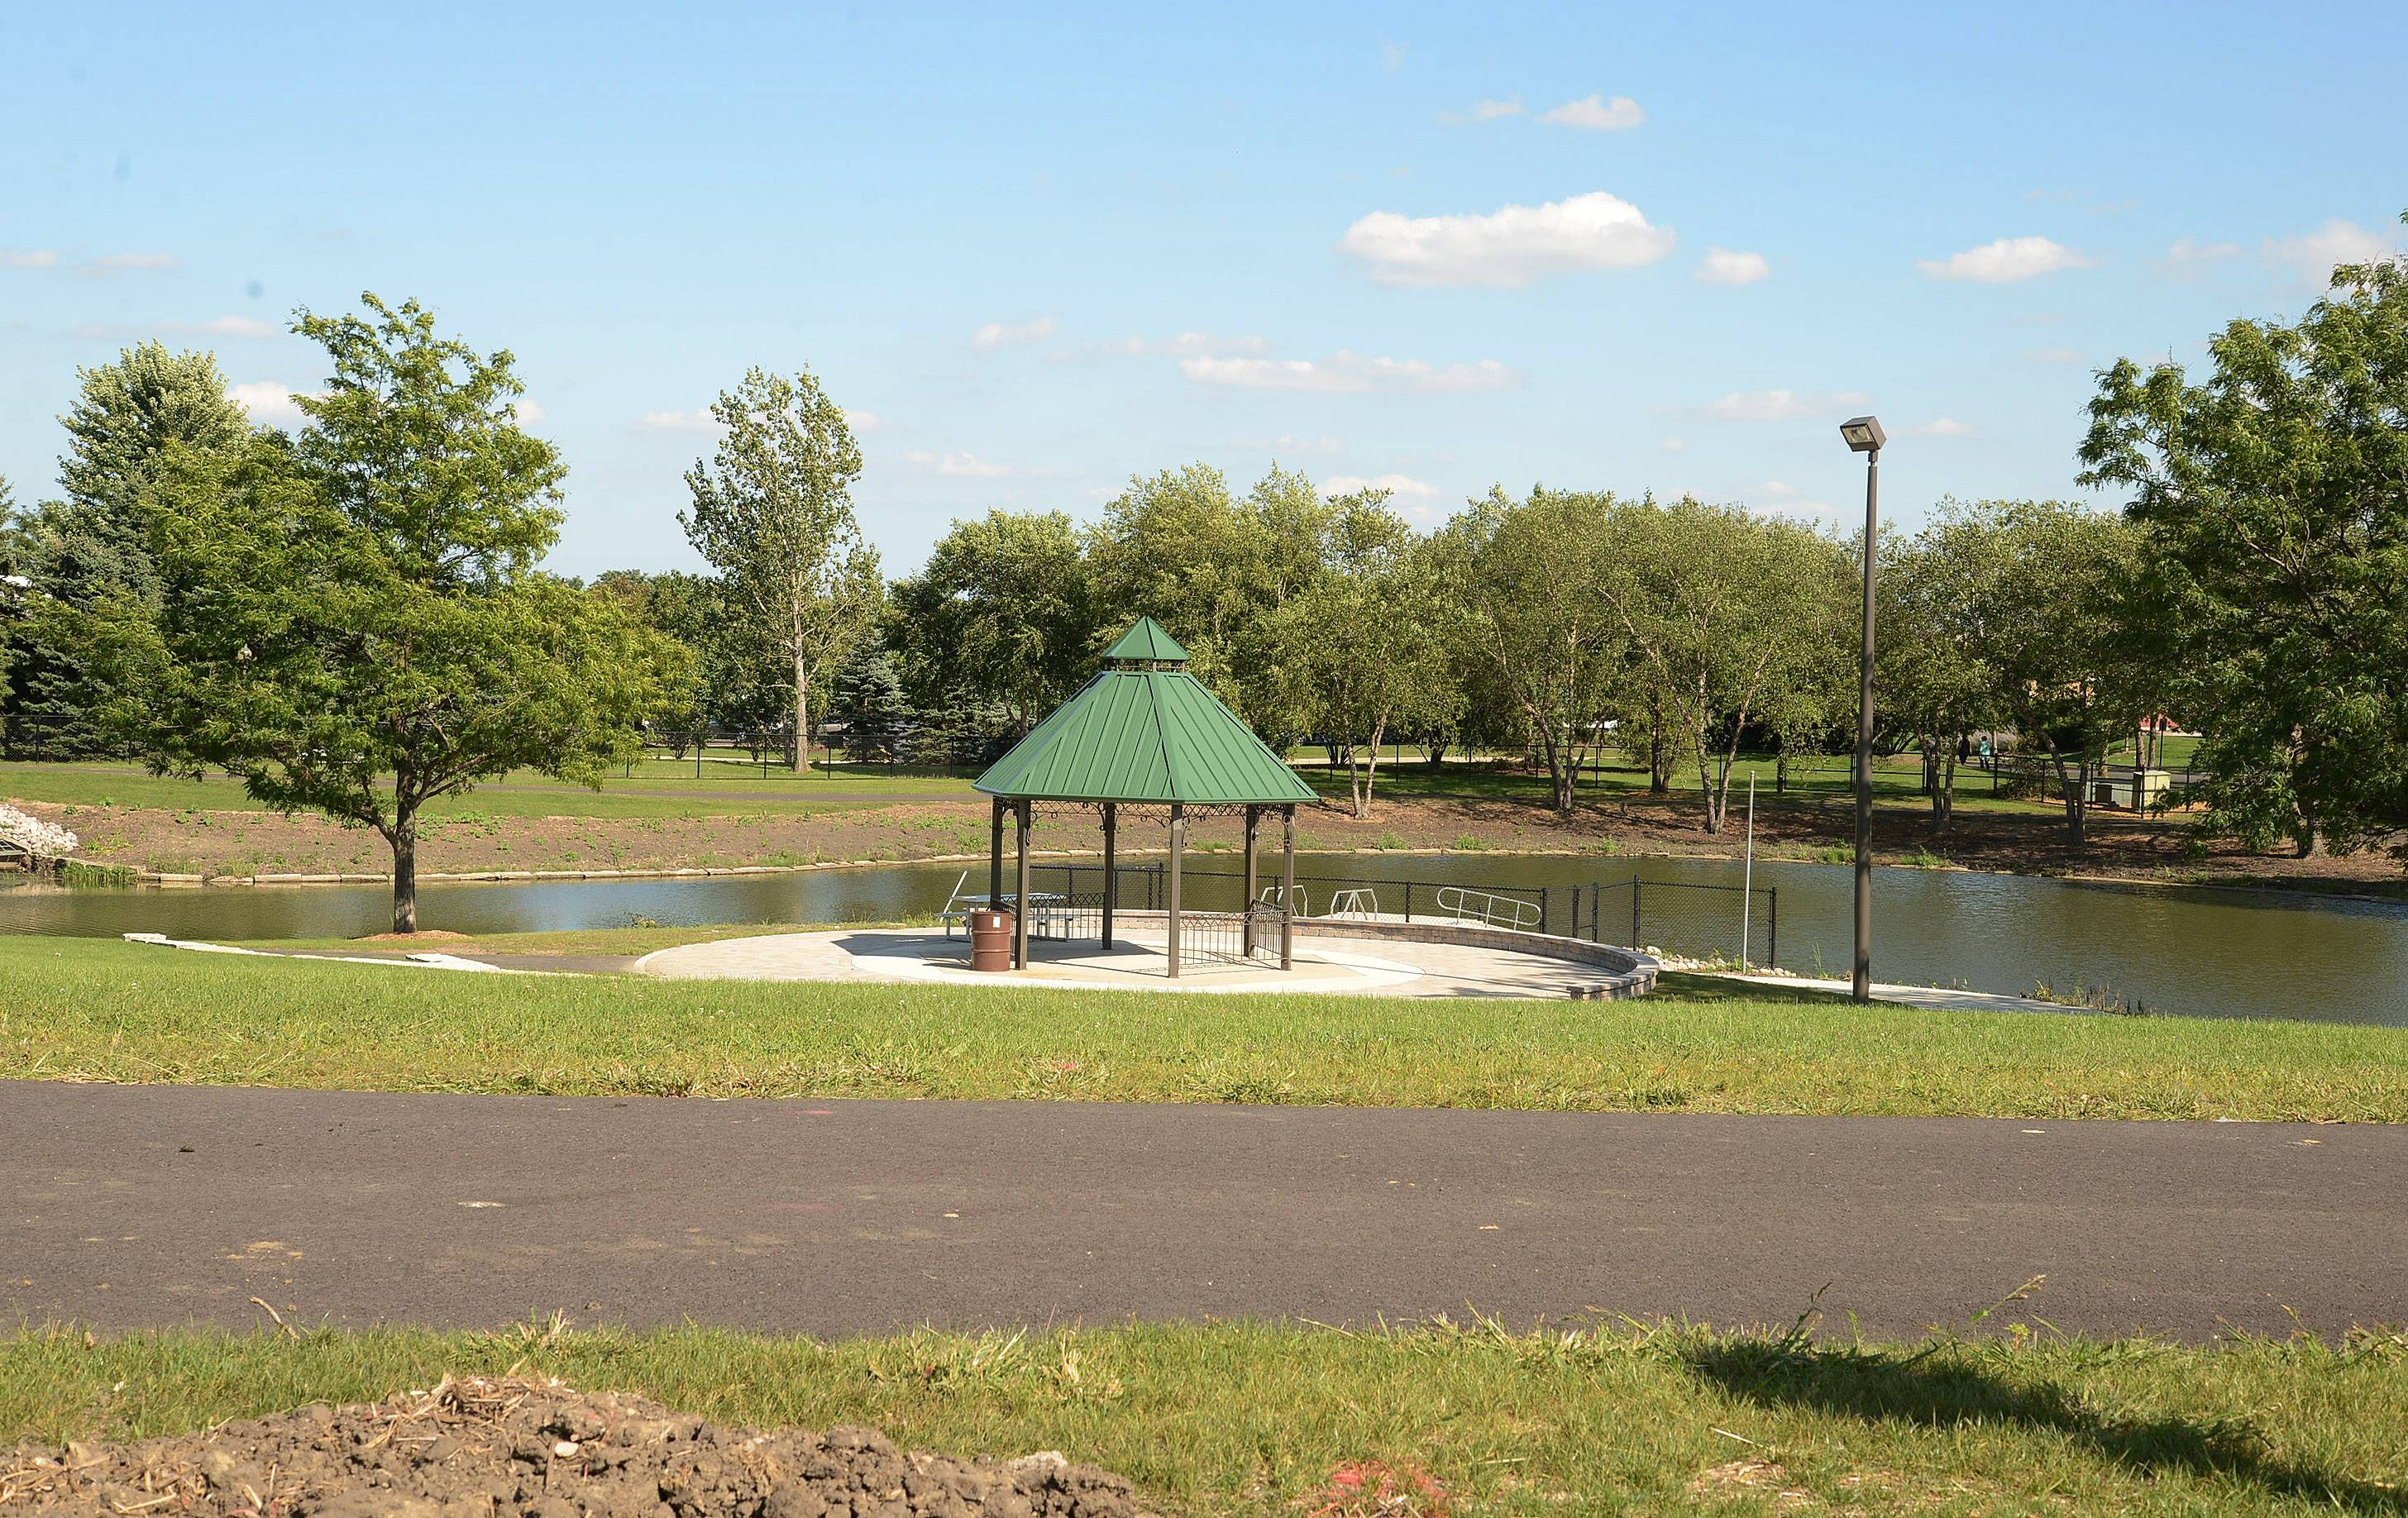 The Schaumburg Park District's new dog park, scheduled to open Oct. 1, has inspired the concern of a nearby Hoffman Estates resident over the safety of its water feature for both pets and people. The pond will be encircled by a fence before opening day.